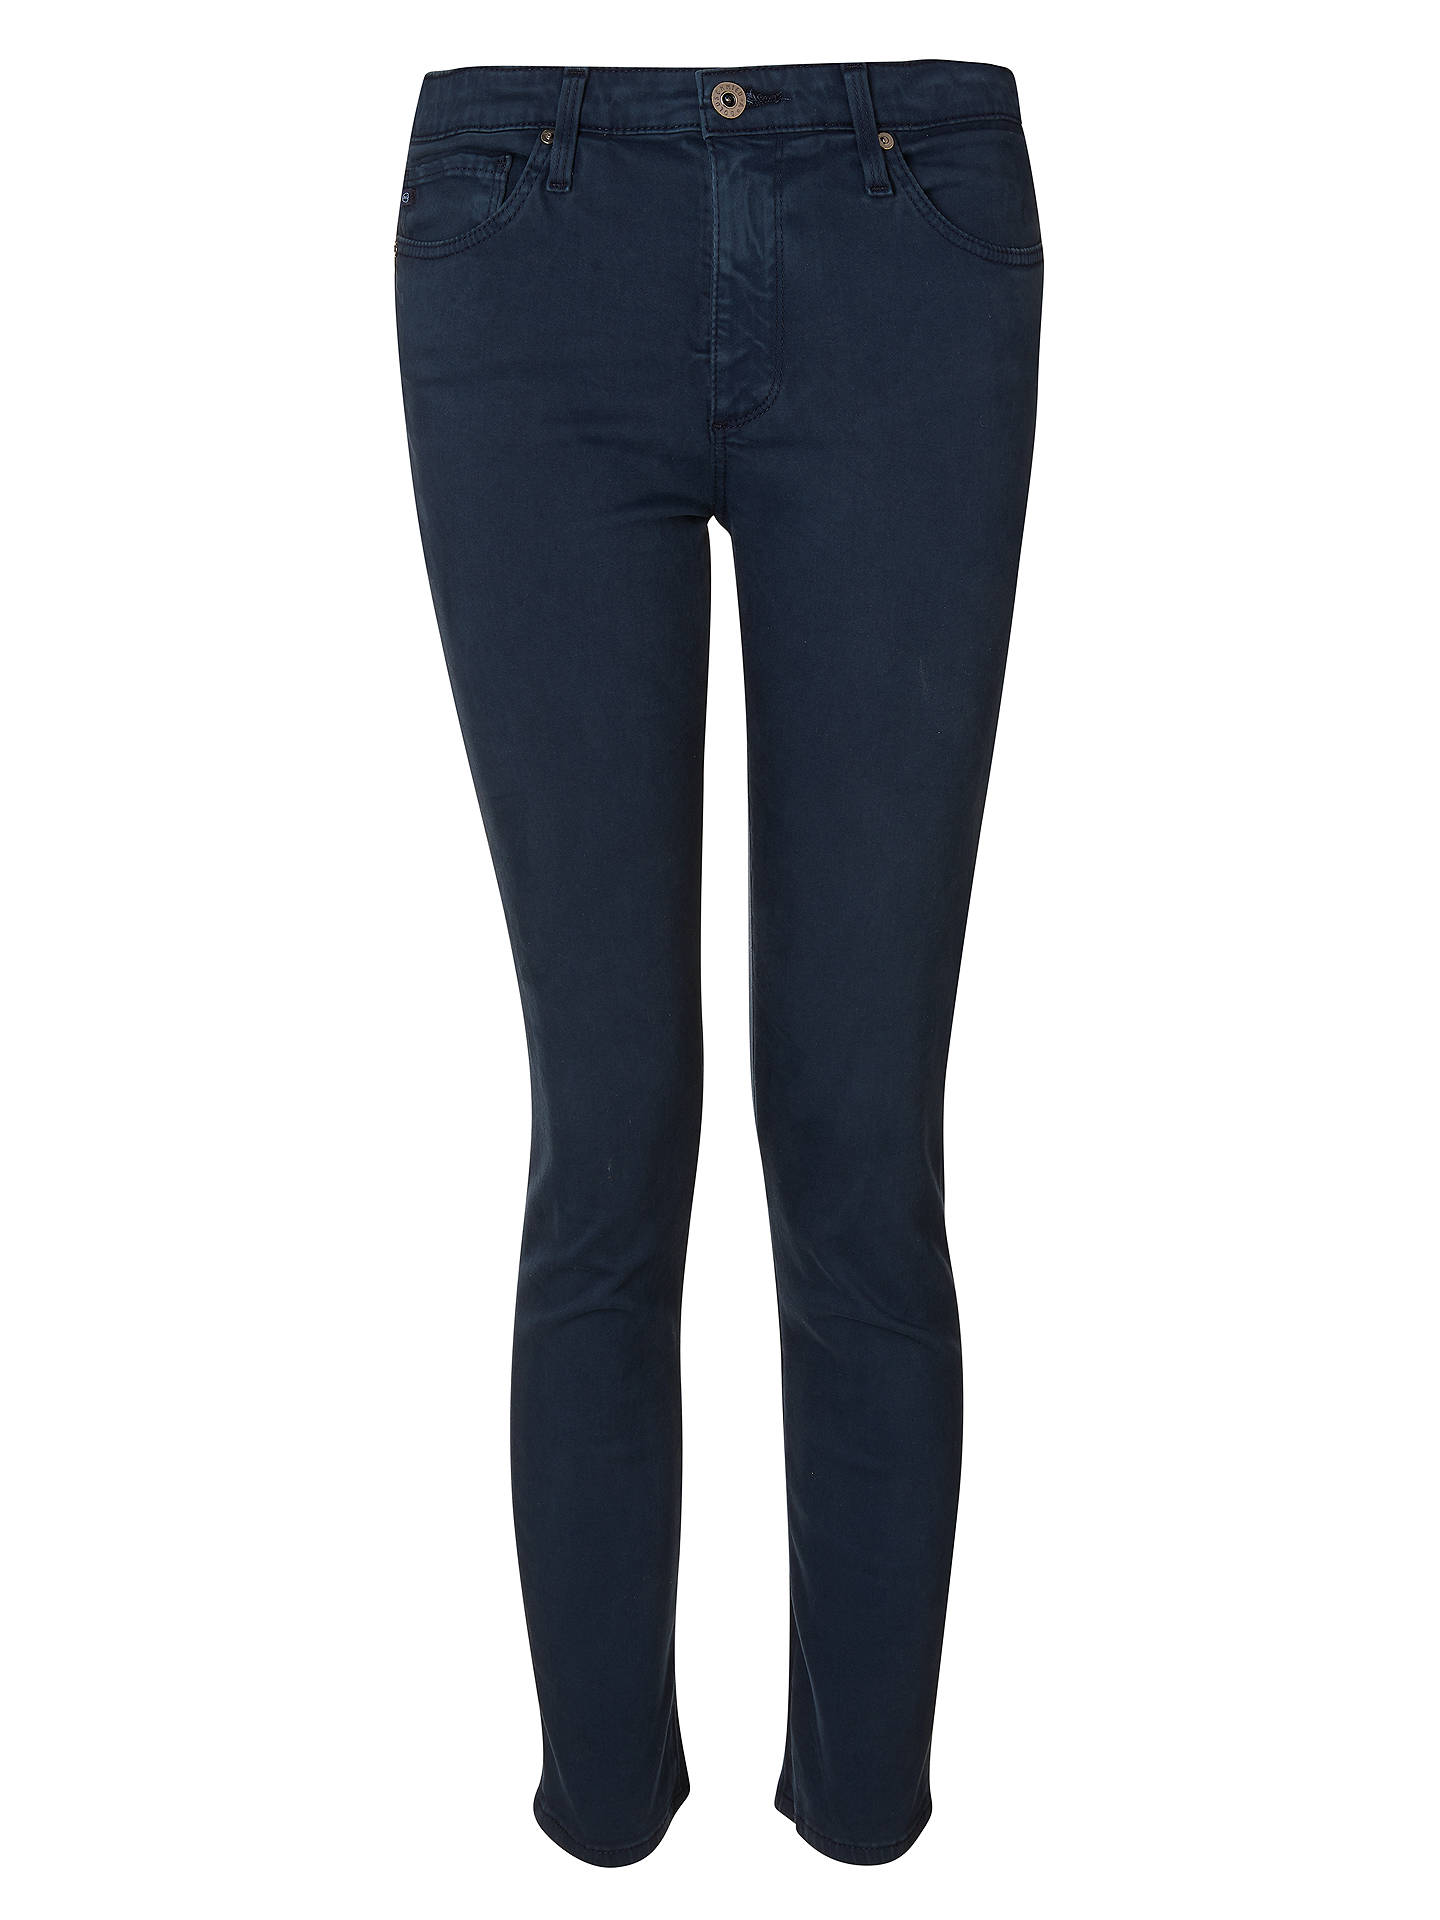 BuyAG The Prima Cropped Skinny Jeans, Sulphur Dark Cove, 23 Online at johnlewis.com